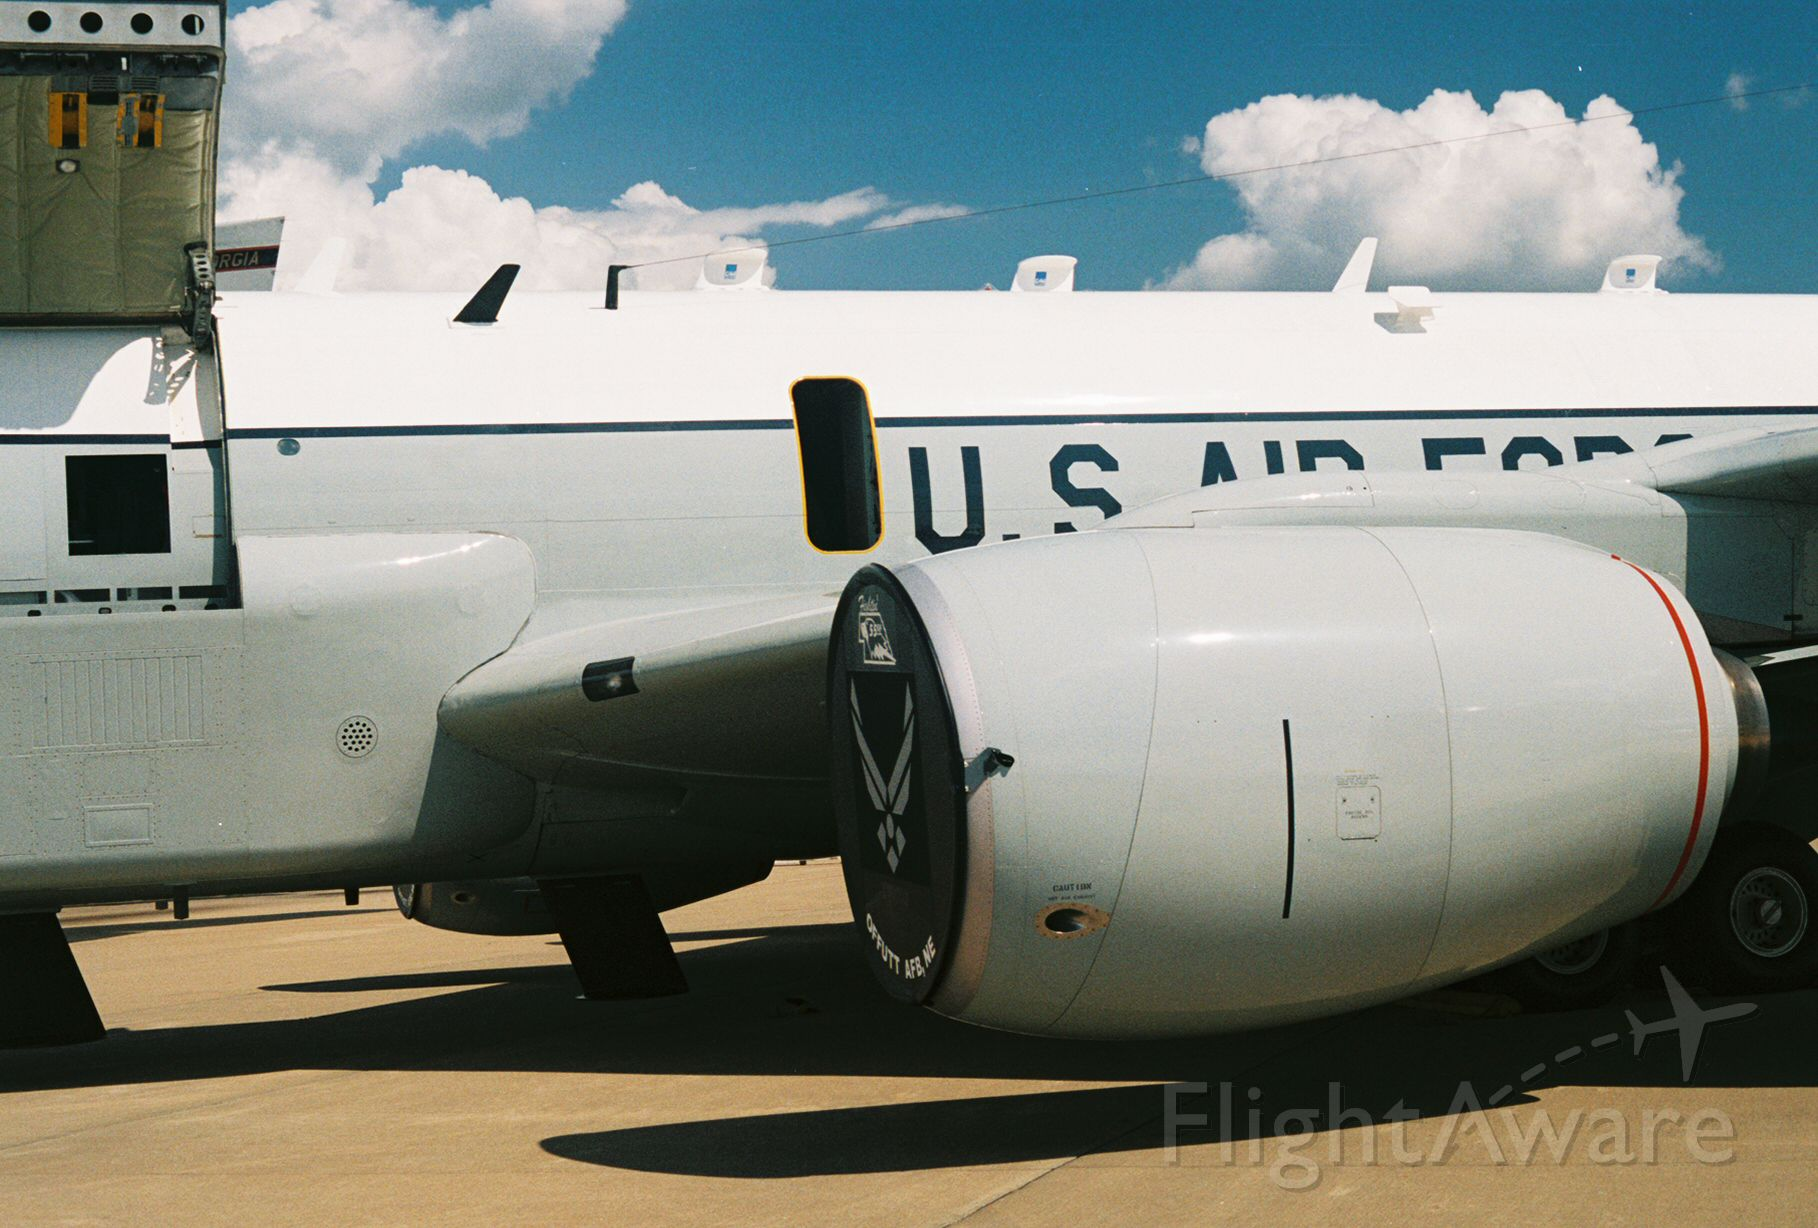 Boeing C-135B Stratolifter (64-4846) - USAF Boeing RC-135V, Rivet Joint, Ser. 64-14846 from 55th Wing, Offutt AFB, showing at the Barksdale AFB annual airshow in May 2005.